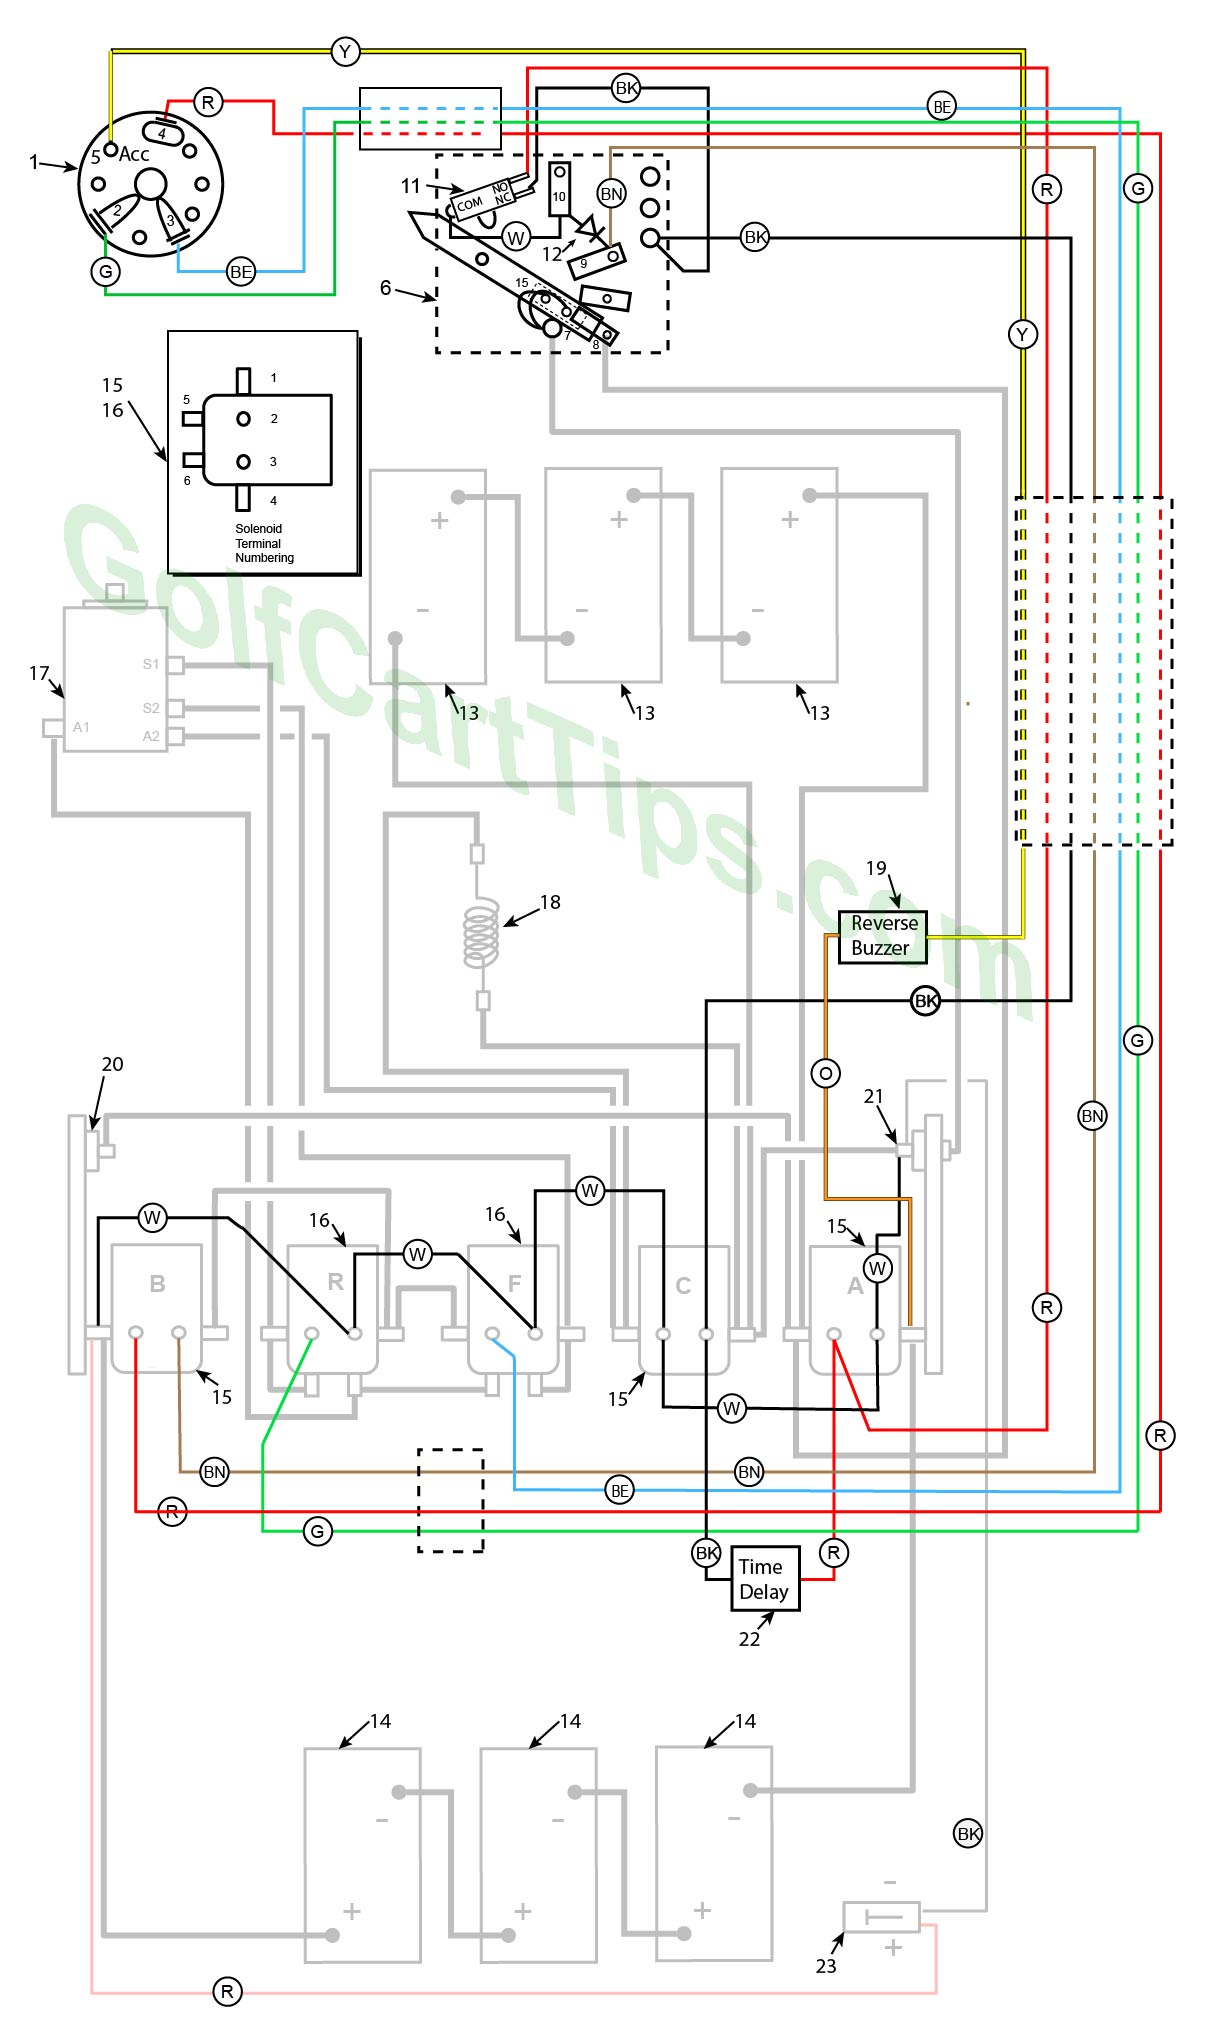 To Ga De De De on Golf Cart Solenoid Wiring Diagram